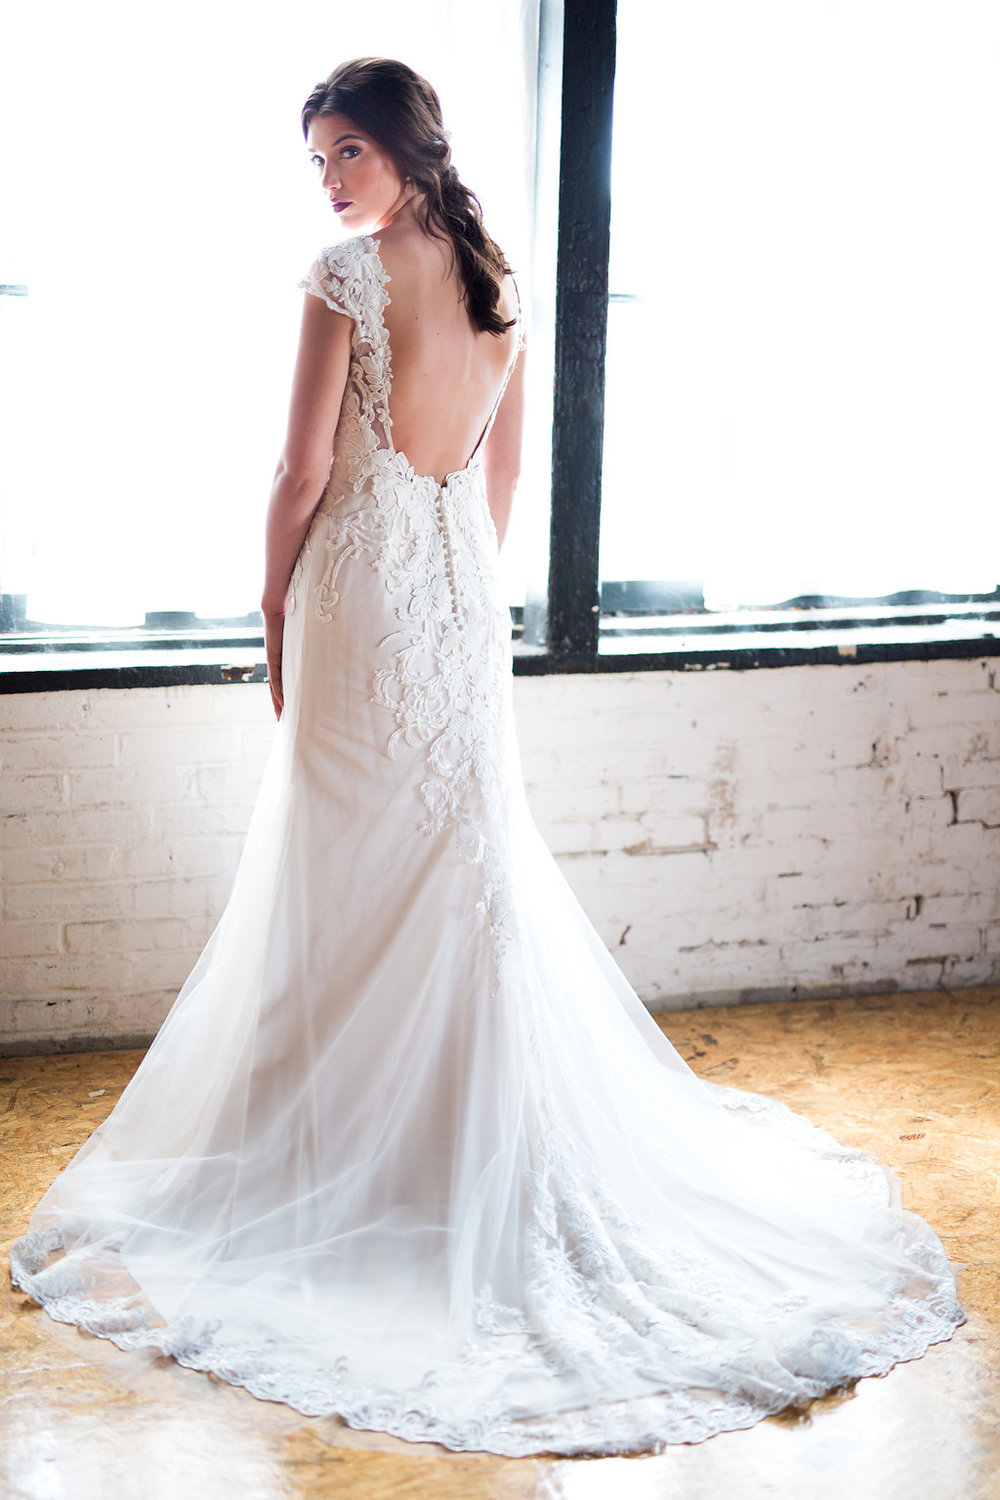 Gown: Lillian West via White Traditions Bridal House